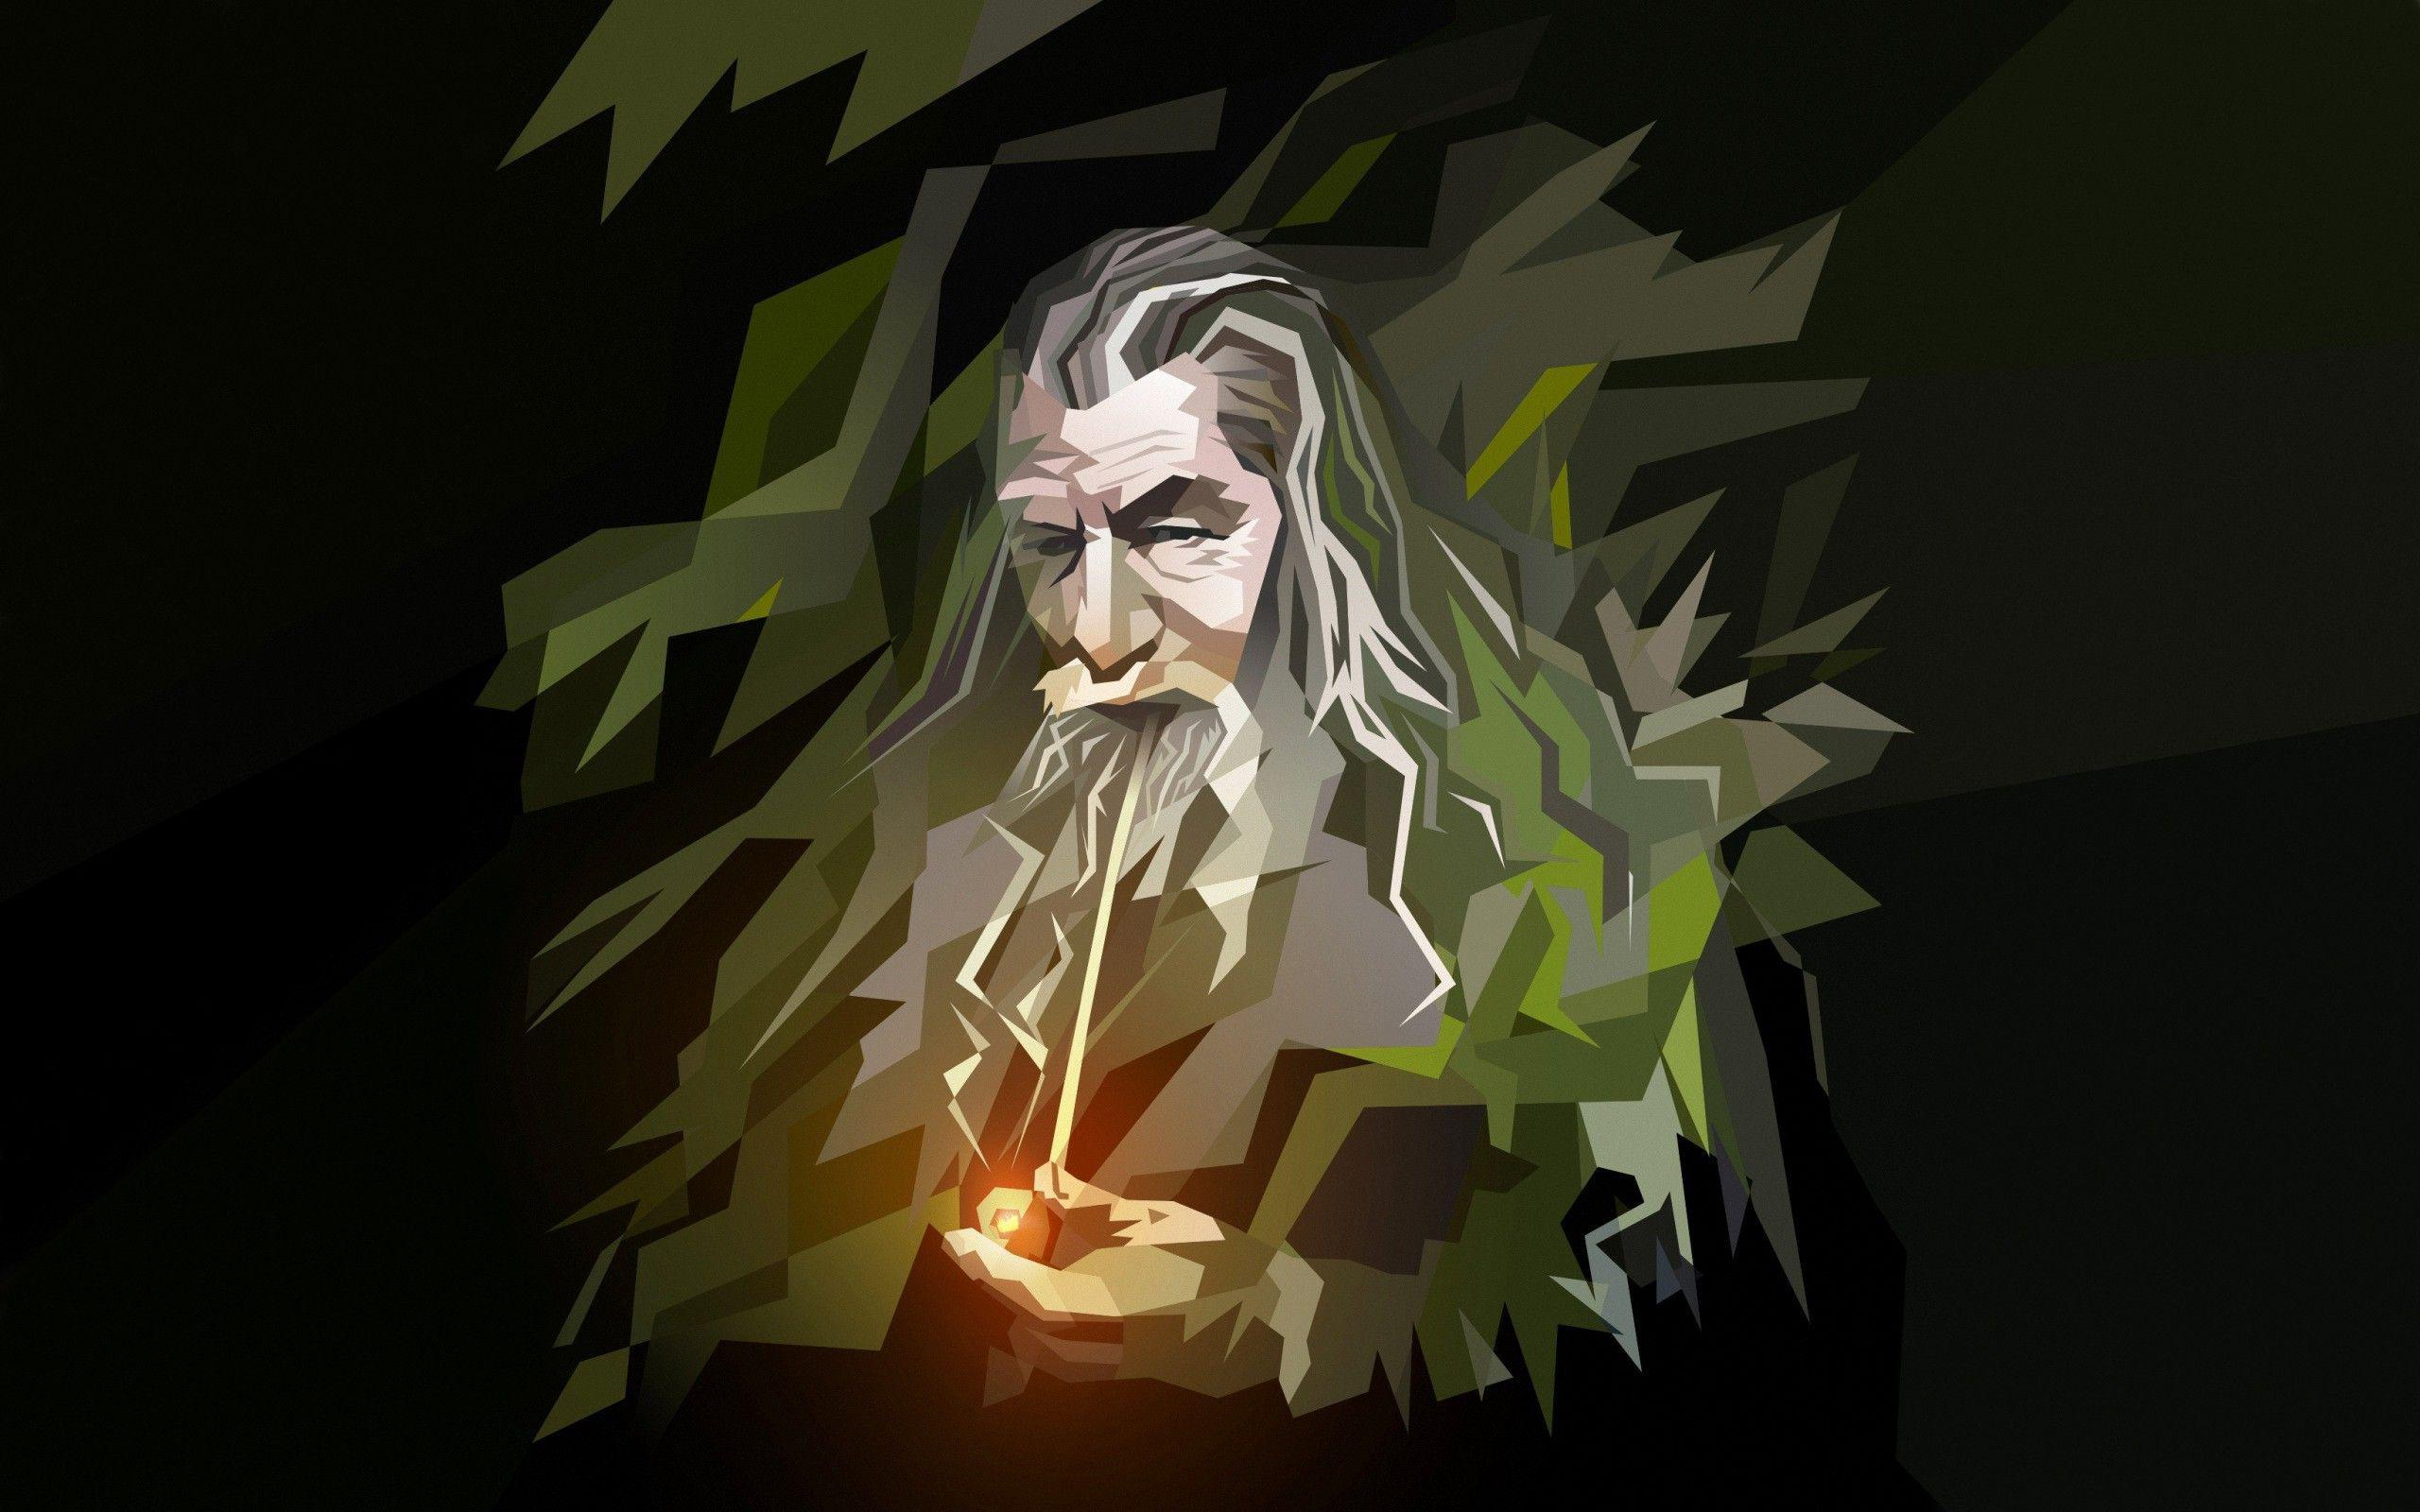 Gandalf   The Lord of the Rings wallpaper other 2560x1600